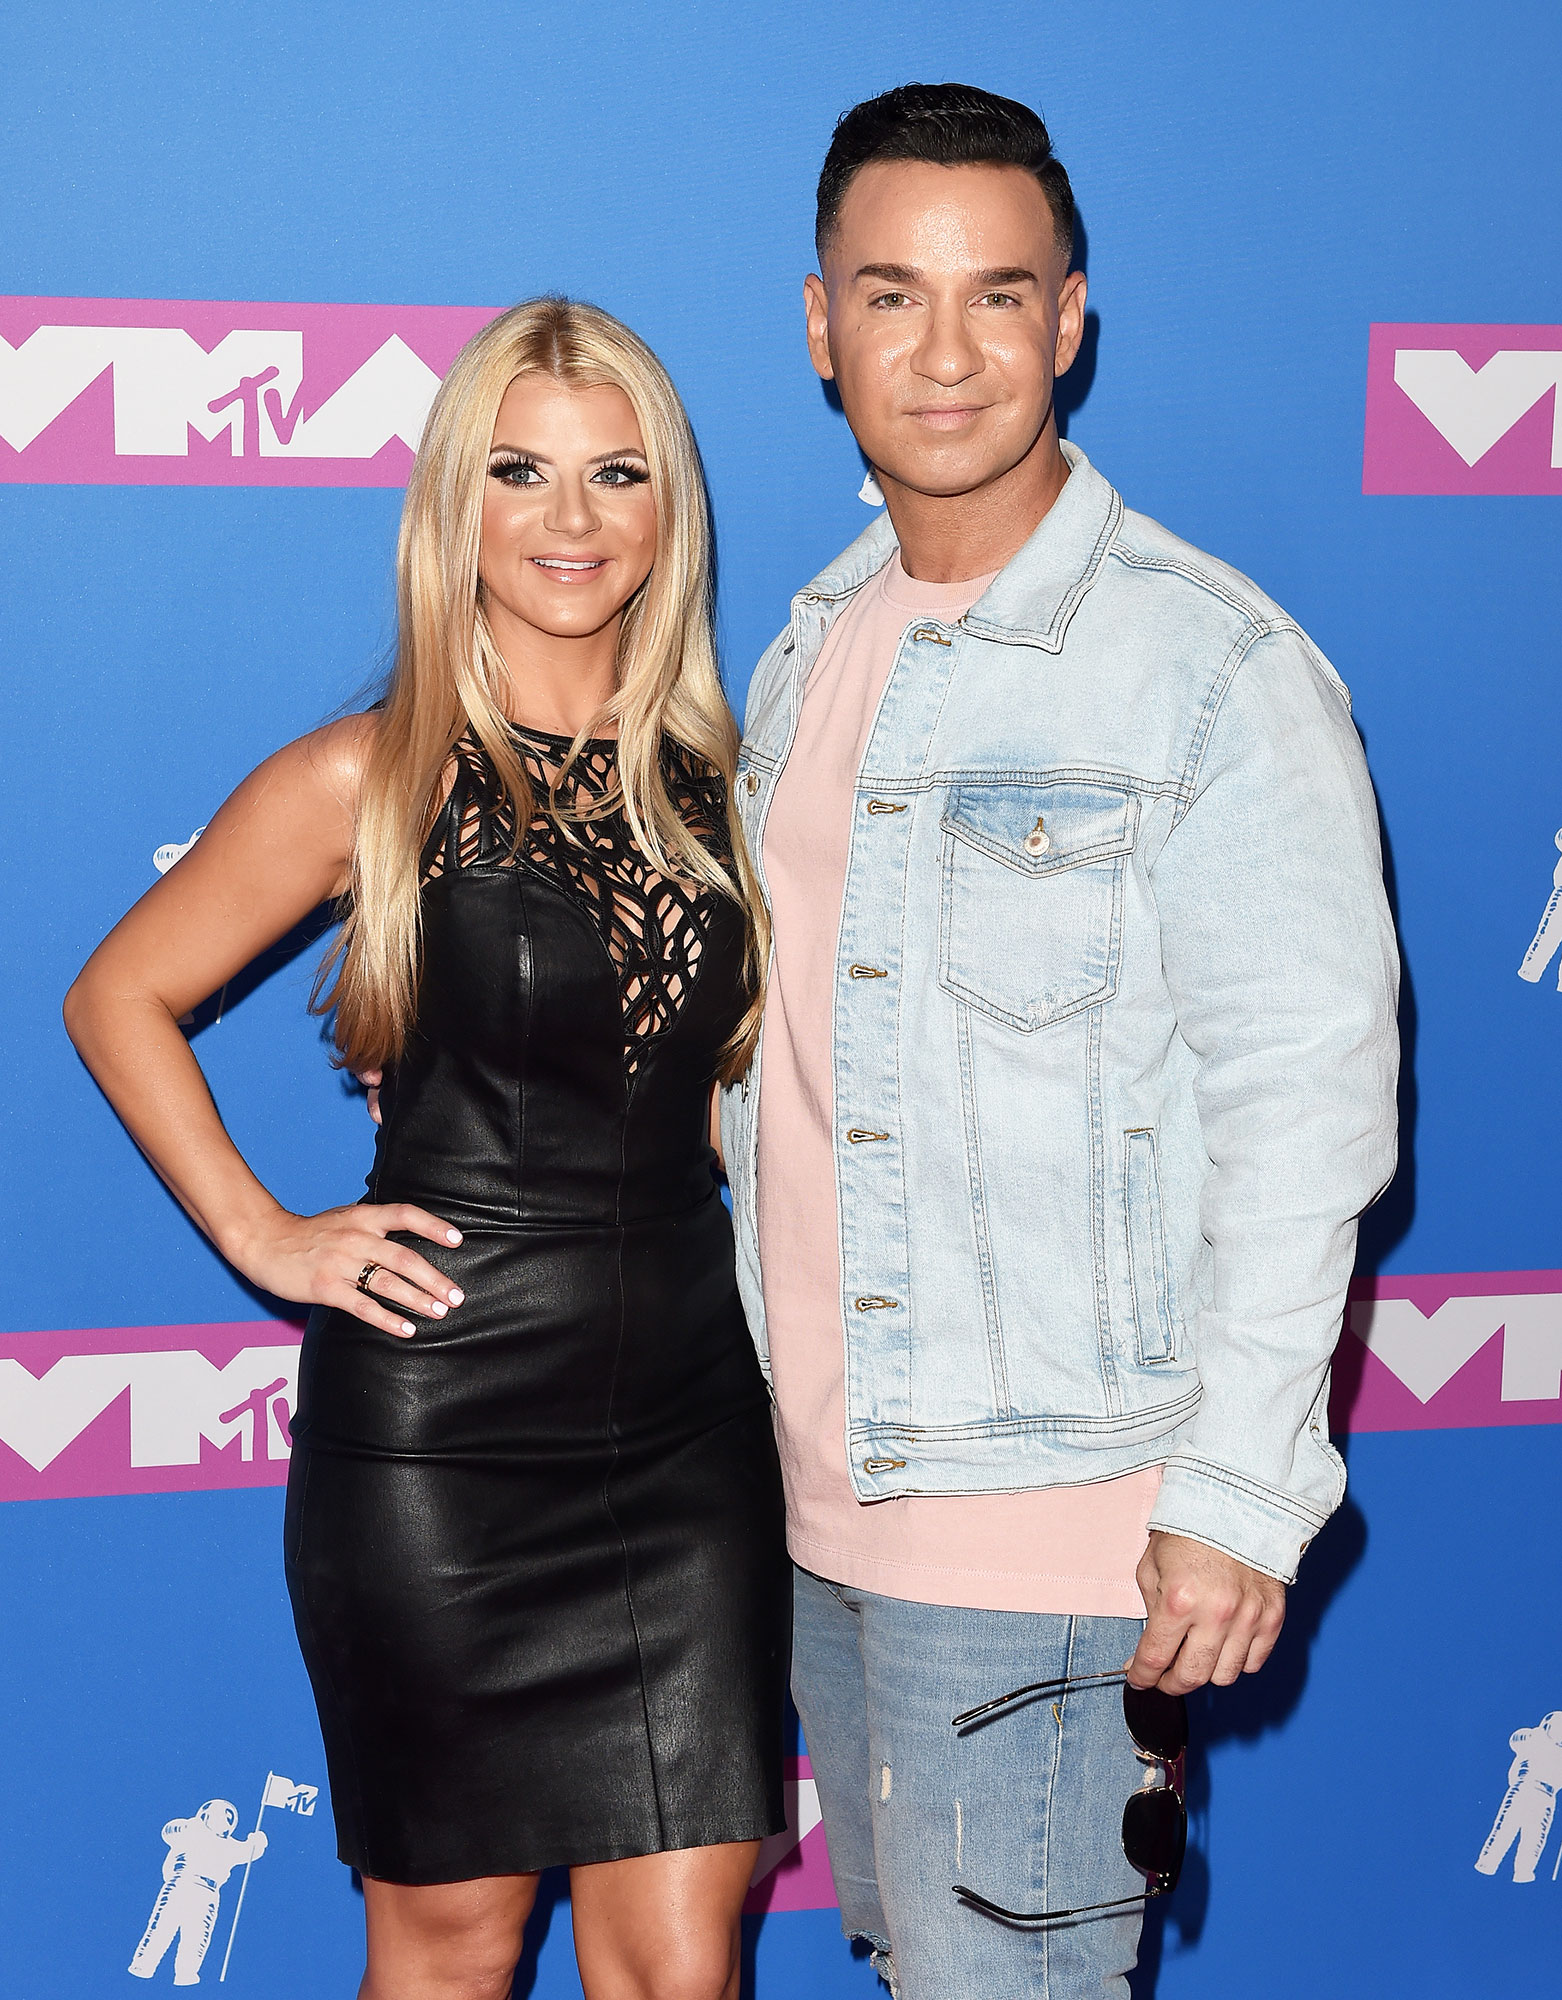 Lauren Pesce and Mike Sorrentino - Lauren Pesce and Mike Sorrentino attend the 2018 MTV Video Music Awards at Radio City Music Hall on August 20, 2018 in New York City.